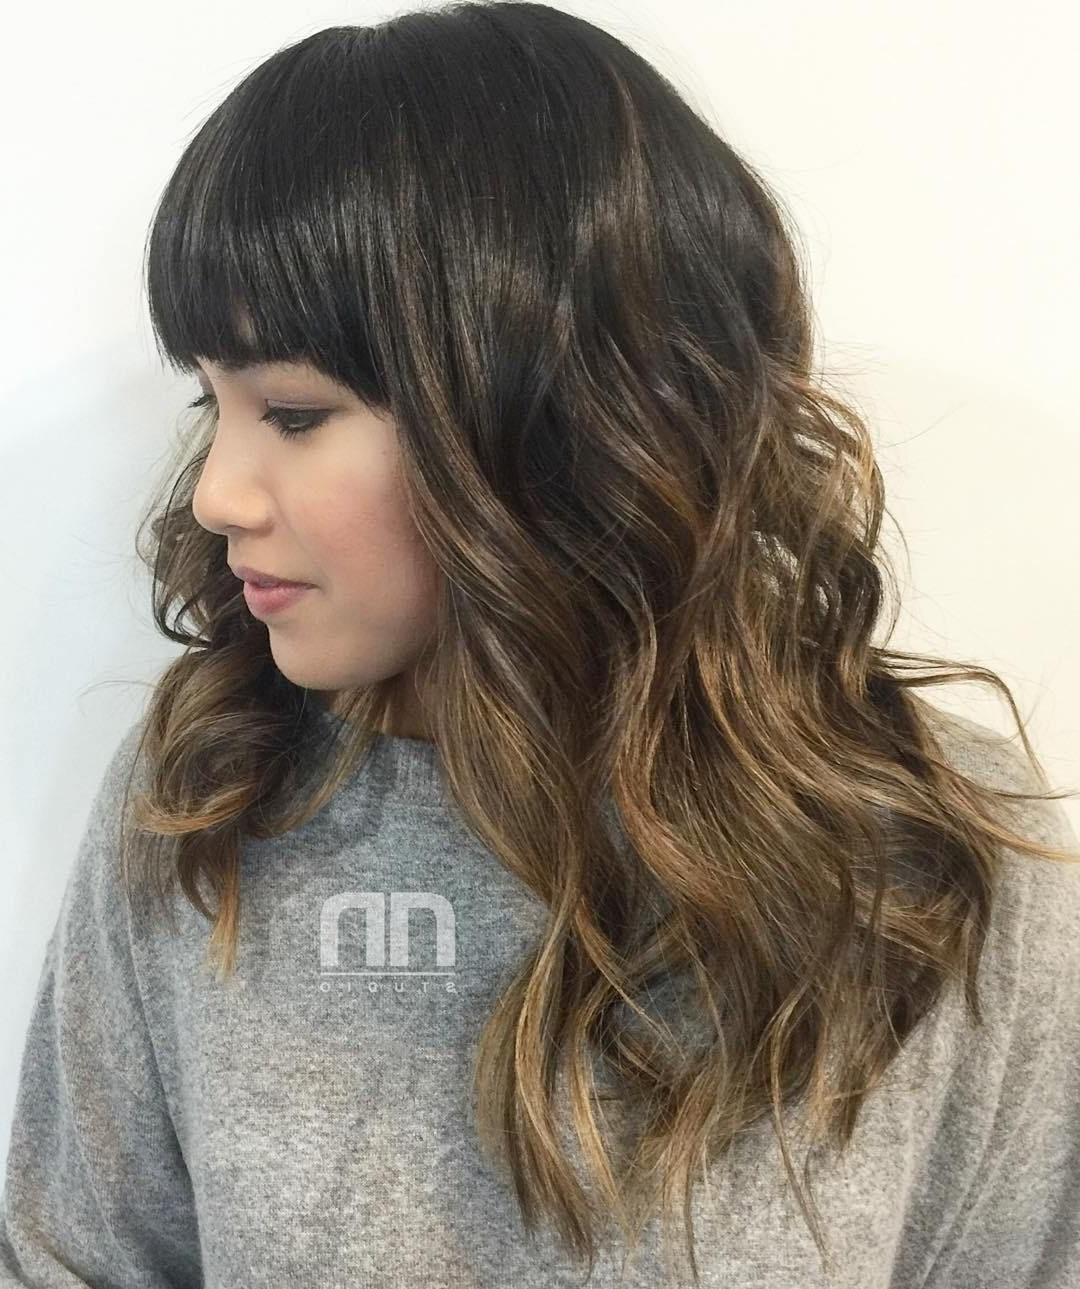 50 Most Magnetizing Hairstyles For Thick Wavy Hair | Brown Ombre With Regard To Golden Brown Thick Curly Bob Hairstyles (View 12 of 20)